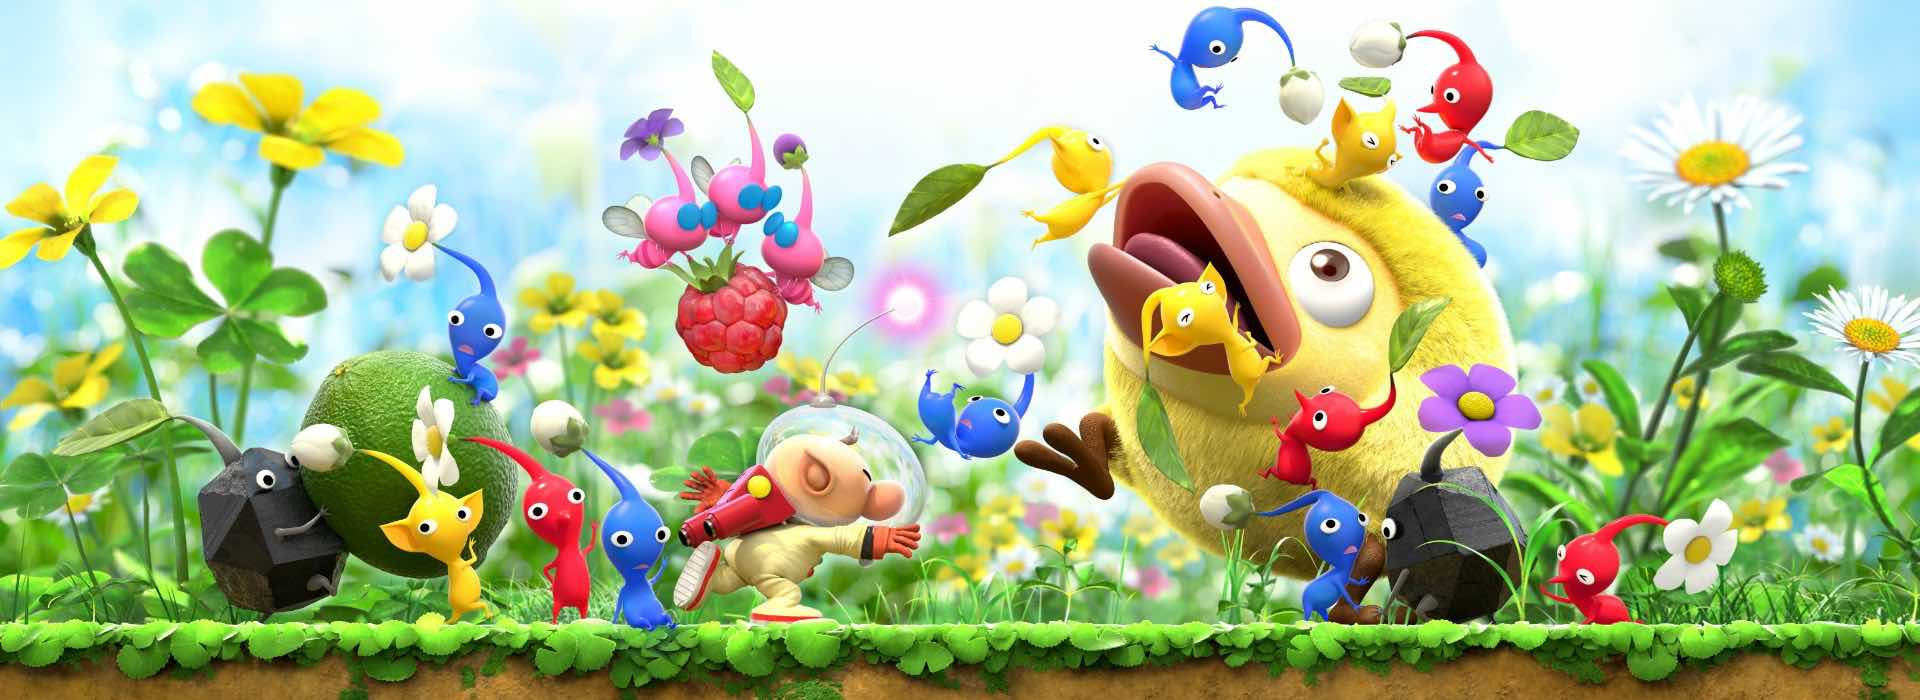 hey-pikmin-review-banner